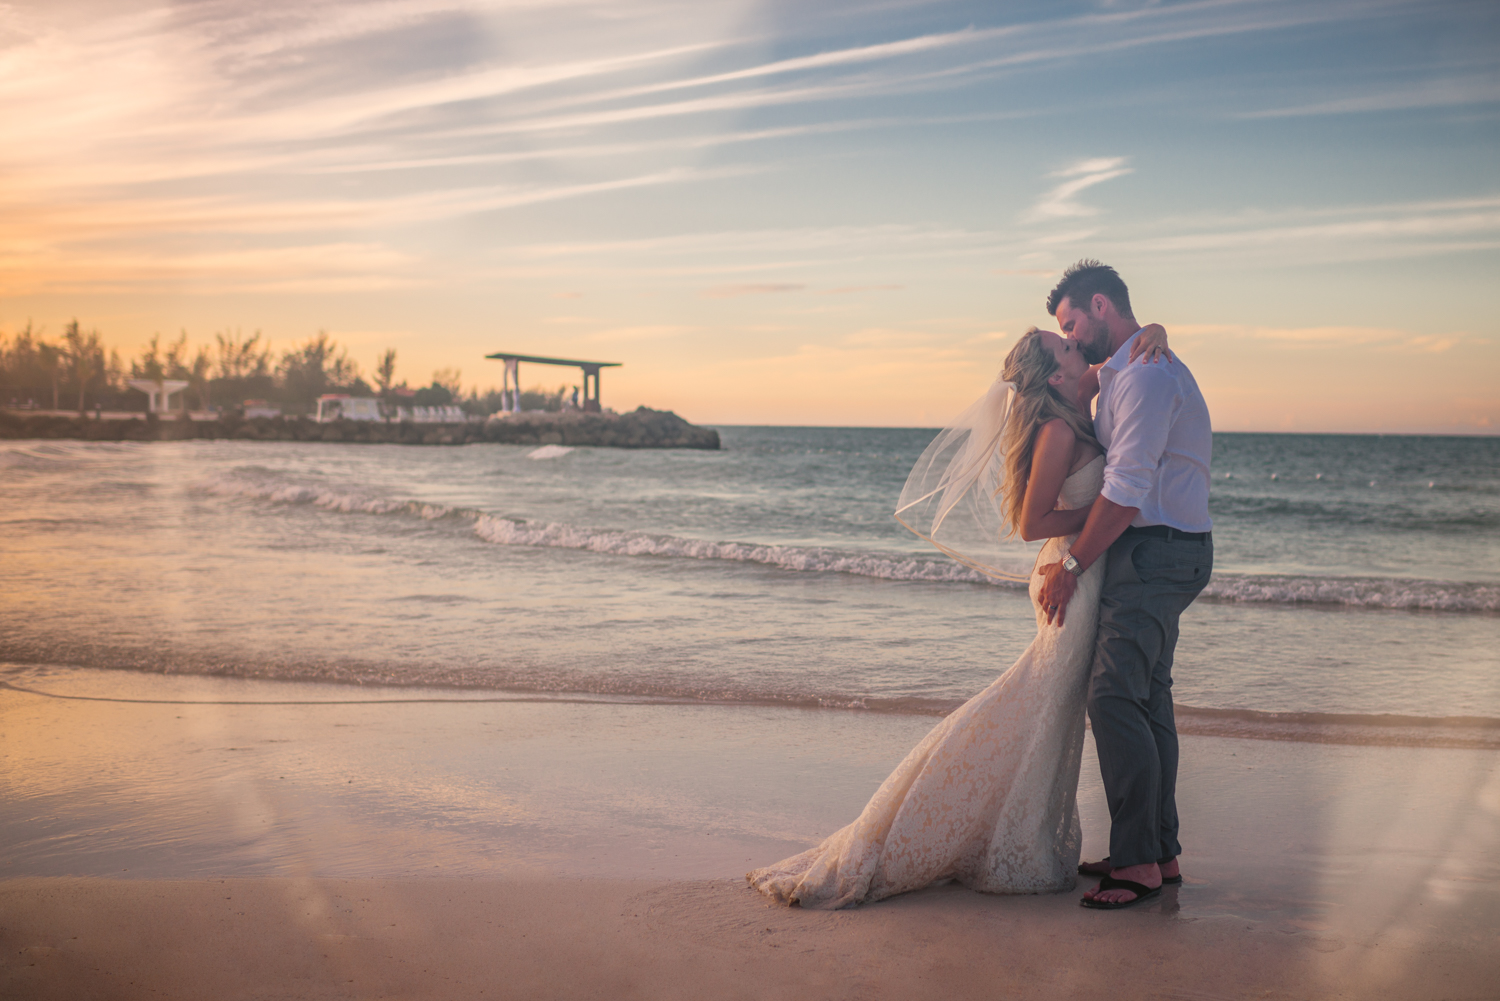 Laura and Allan, the bride and groom, kiss after their destination wedding on the beach in Montego Bay, Jamaica.